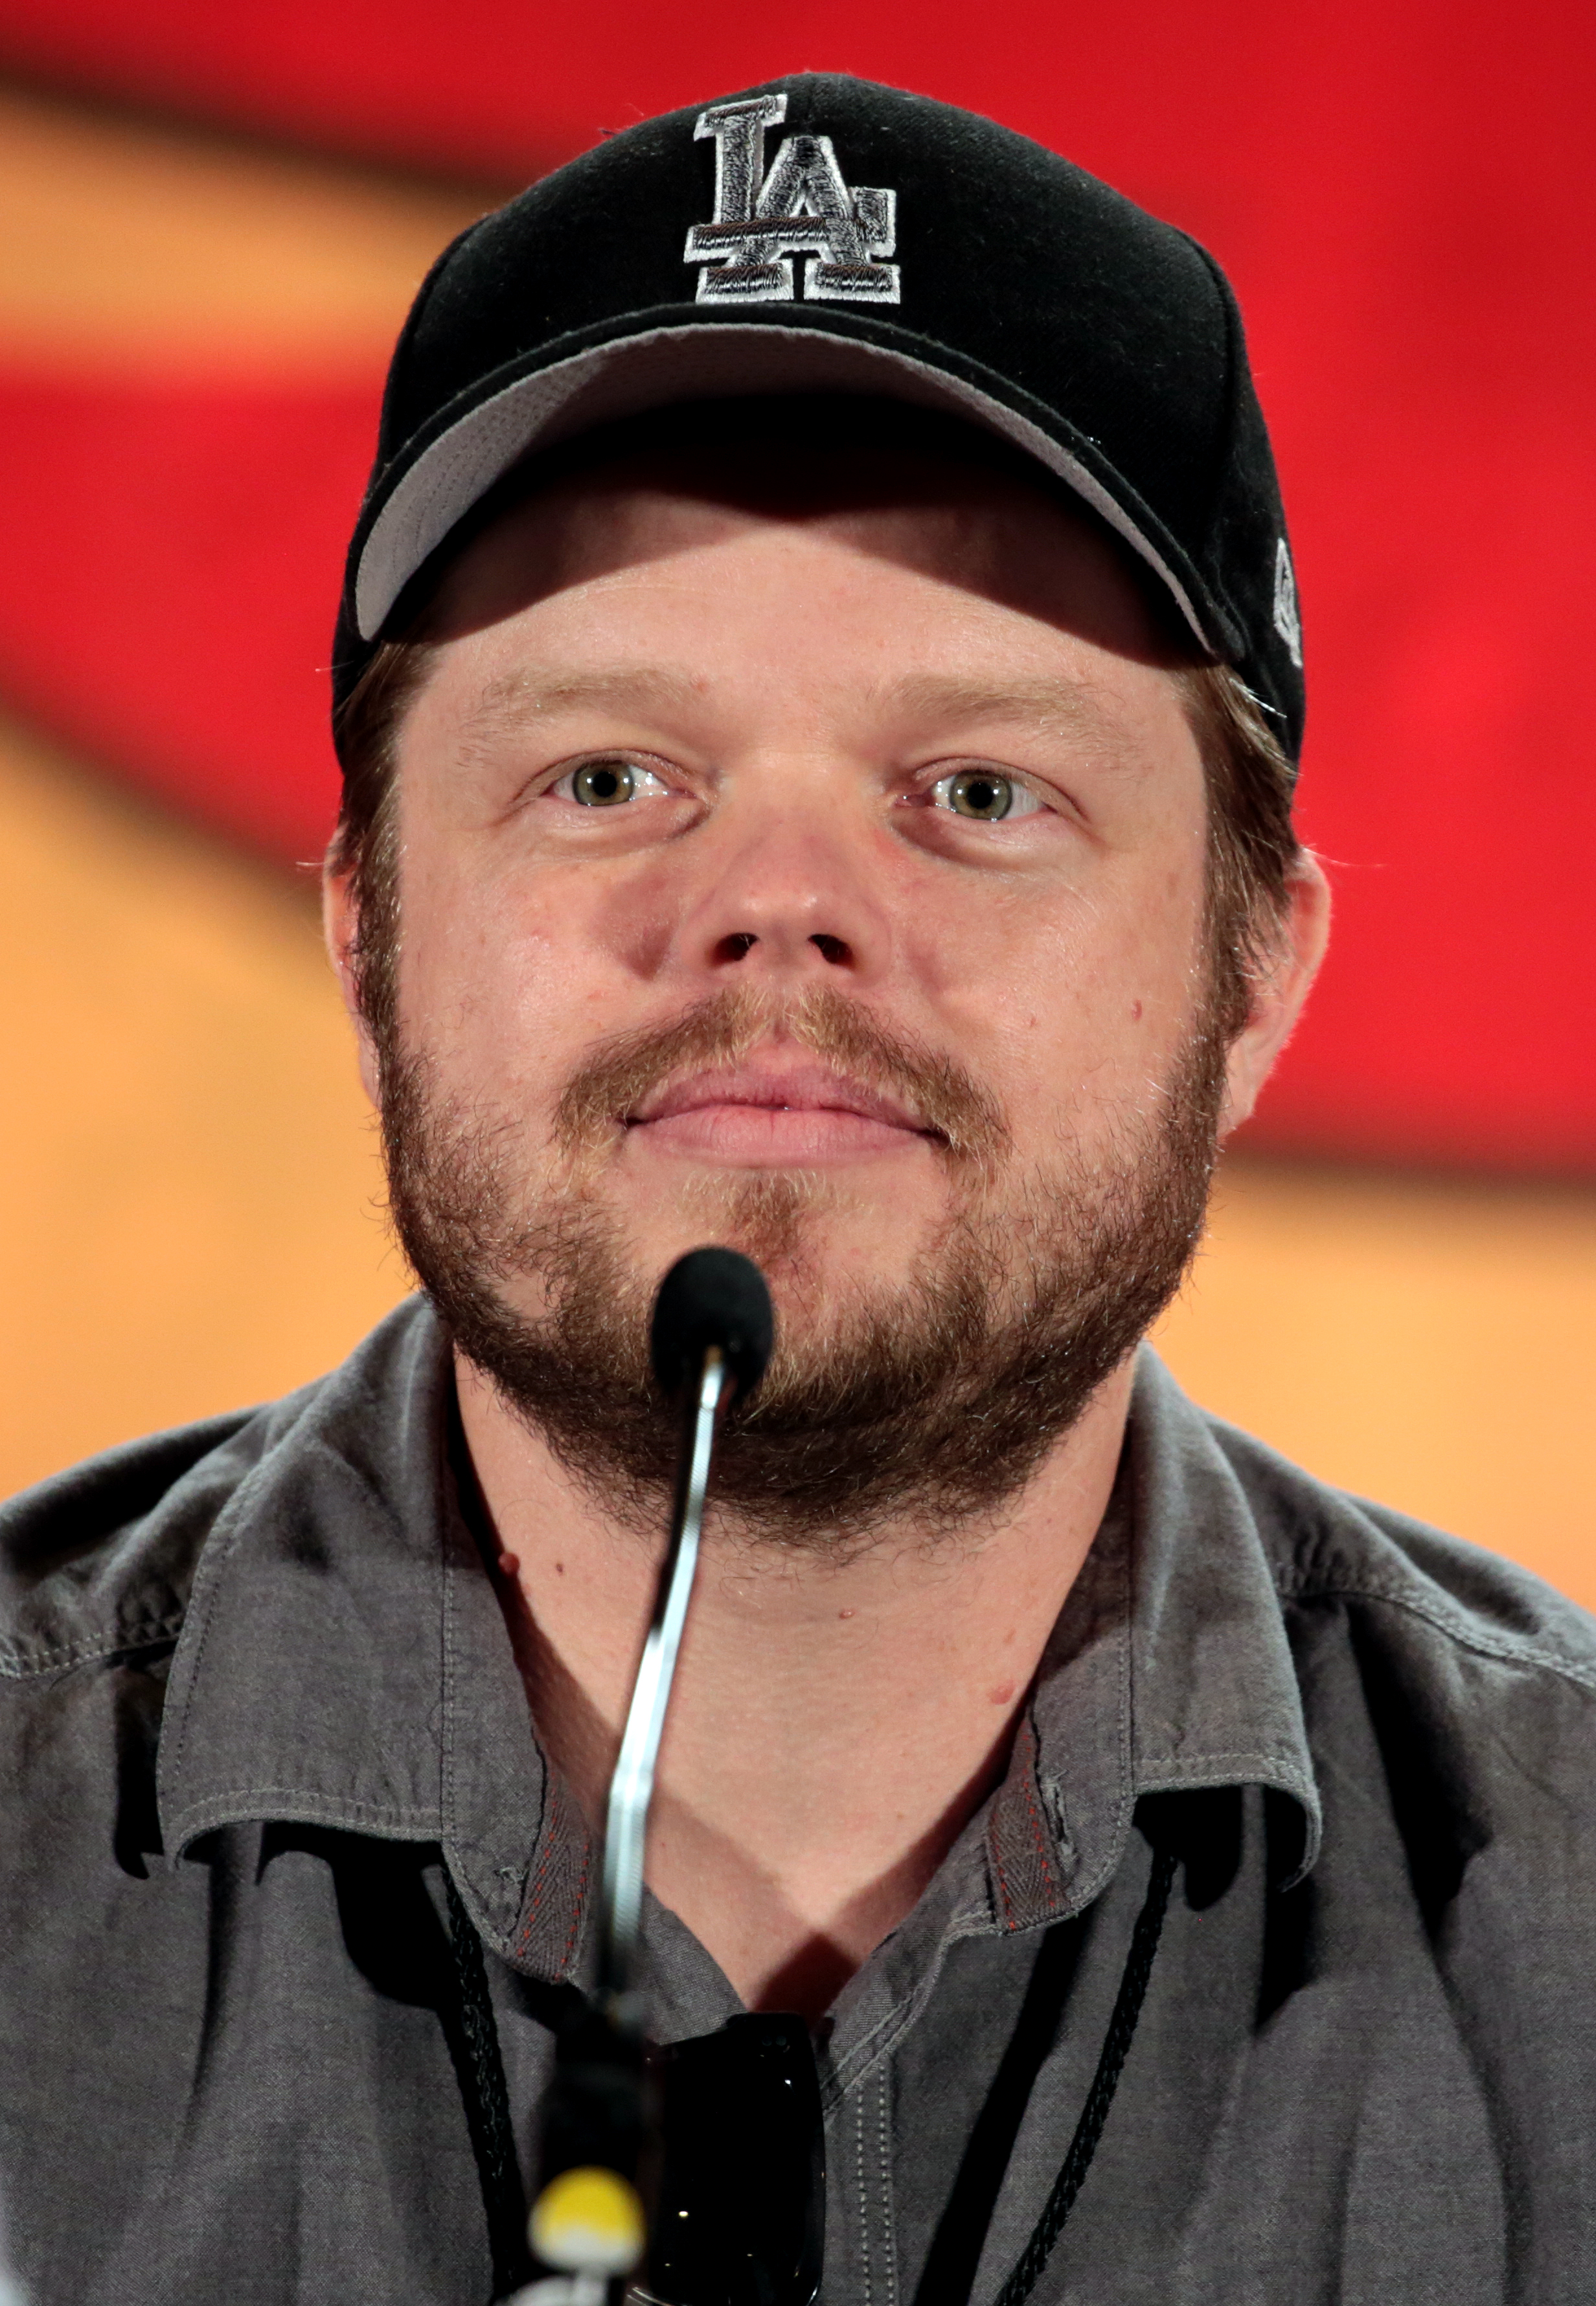 The 42-year old son of father (?) and mother(?) Elden Henson in 2020 photo. Elden Henson earned a million dollar salary - leaving the net worth at 5.4 million in 2020